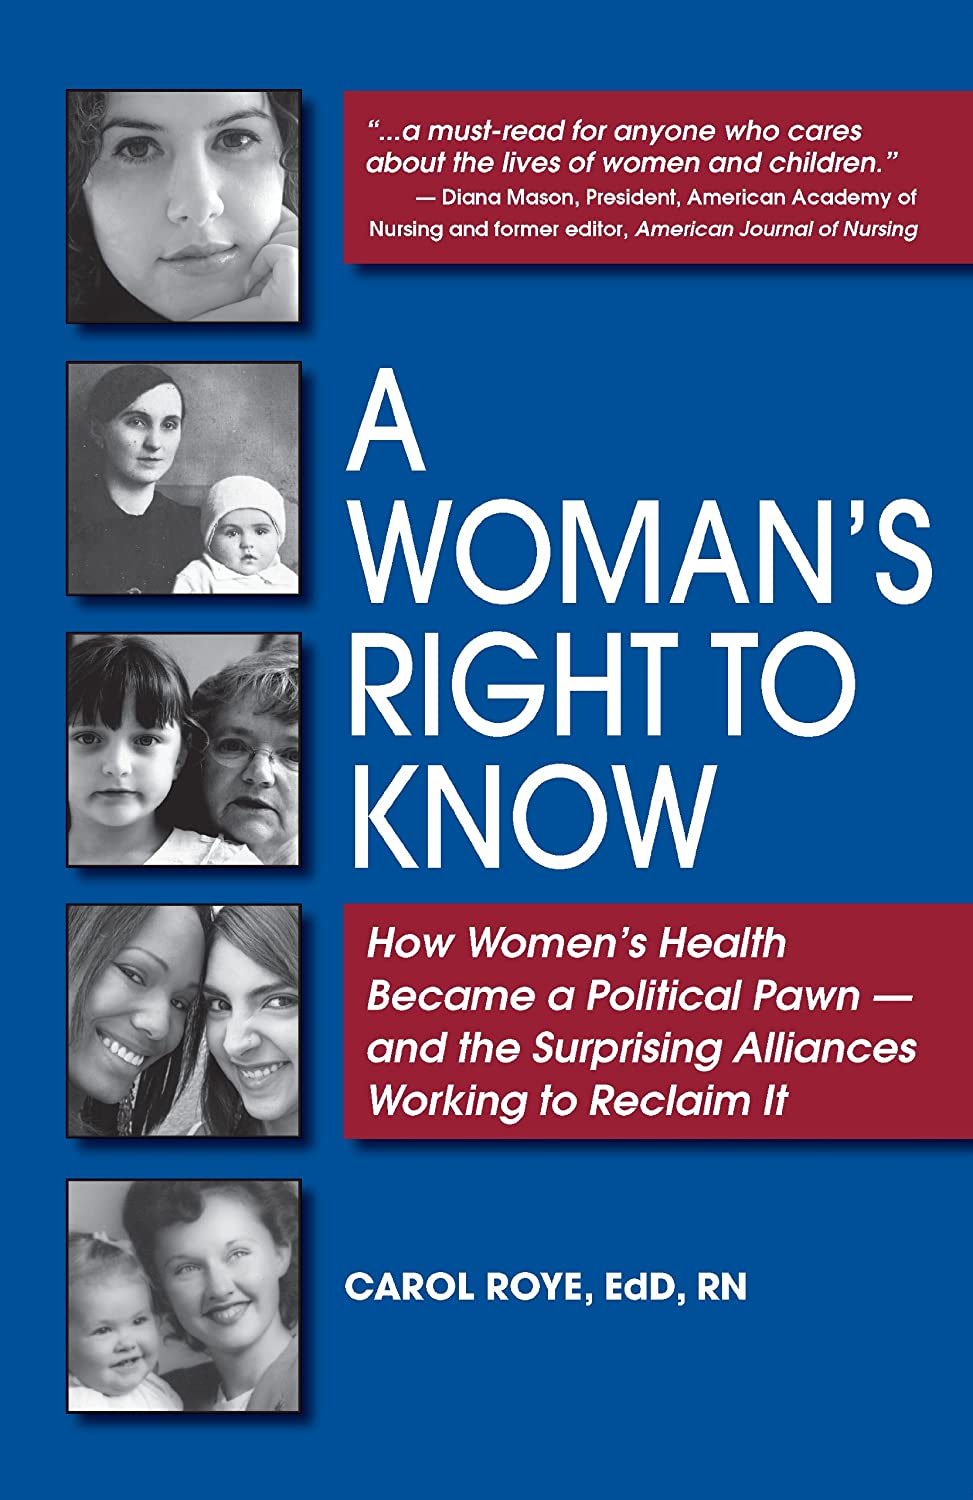 A Woman's Right to Know: How Women's Health Became a Political Pawn - and the Surprising Alliances Working to Reclaim It by Carol Roye